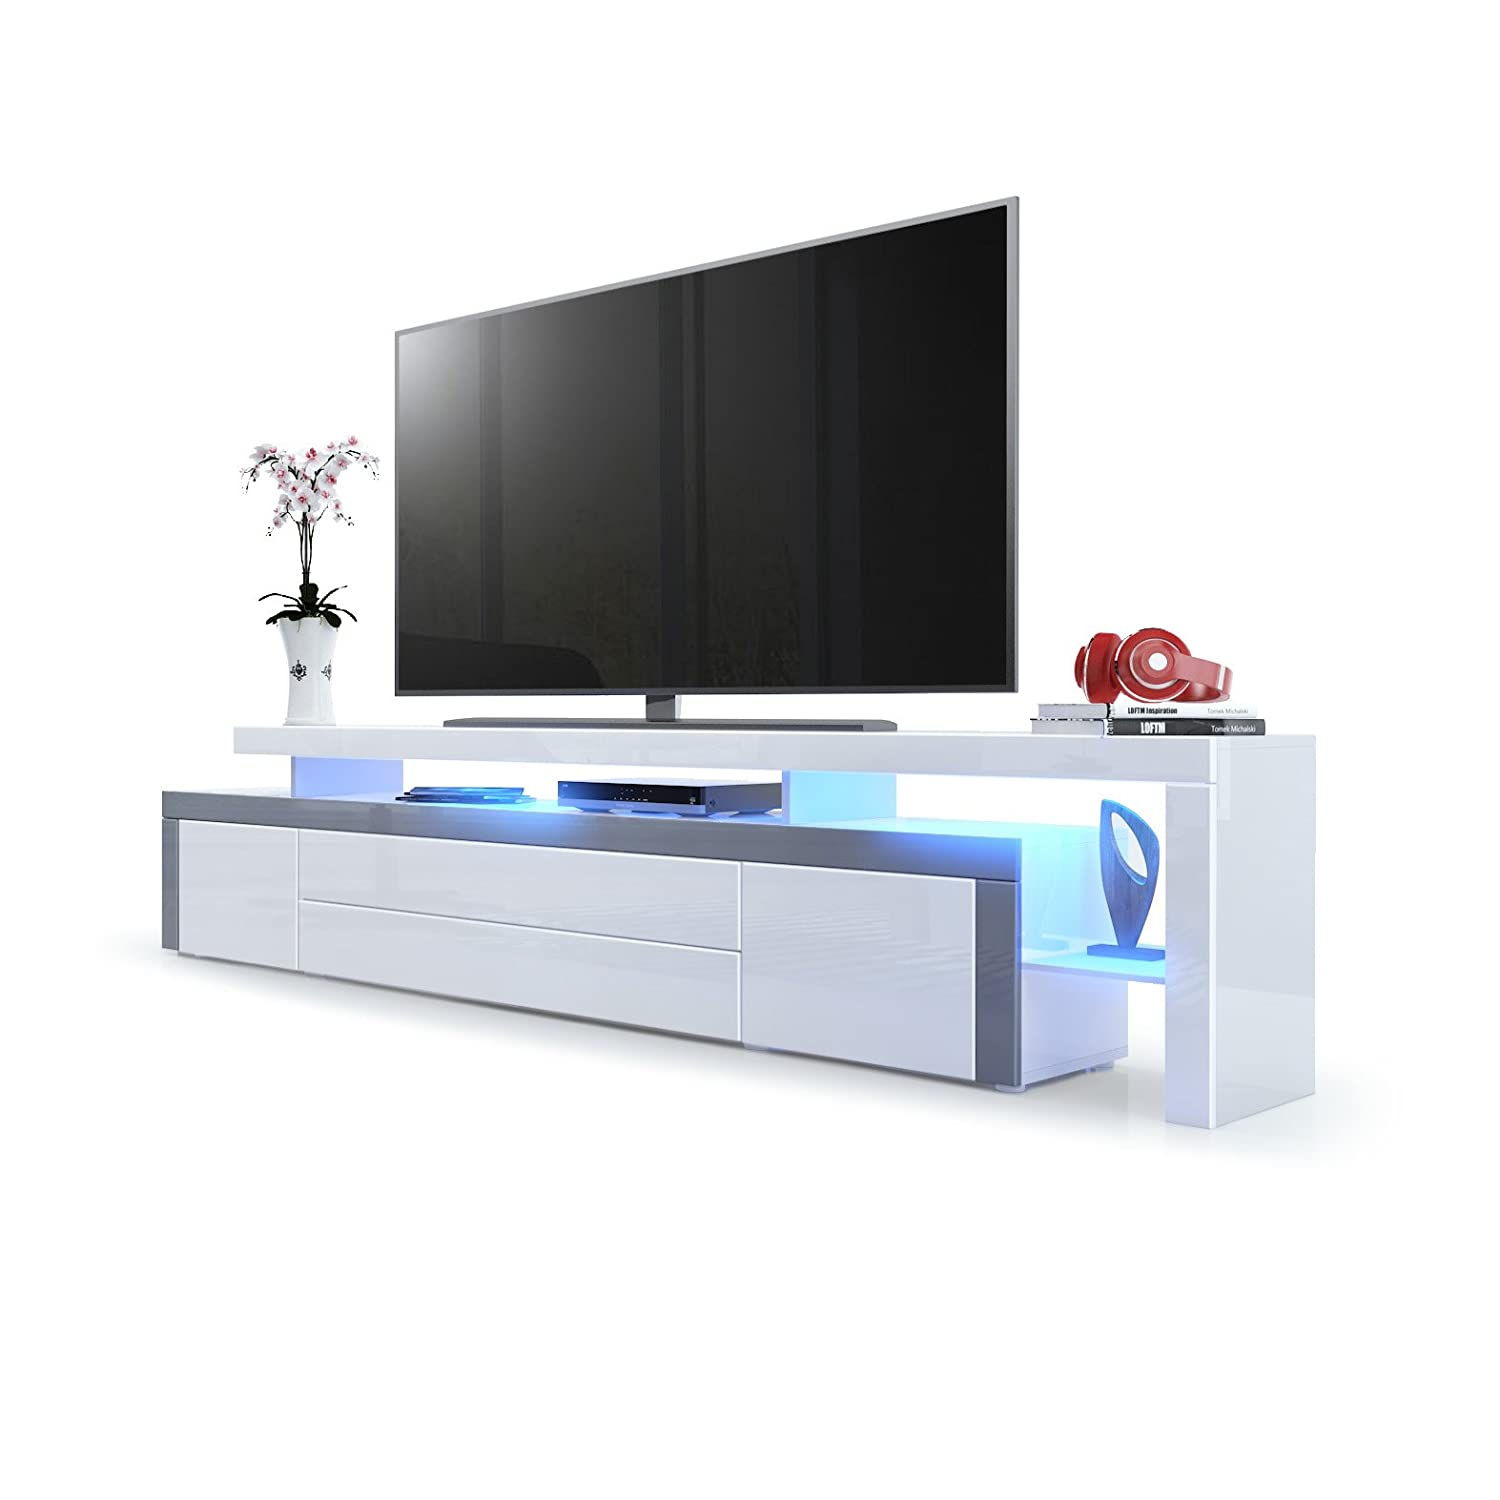 White High Gloss   Grey High Gloss with LED TV Stand Unit Leon V3, Carcass and raised stand in White High Gloss   Front in Fuchsia High Gloss with a frame in White High Gloss